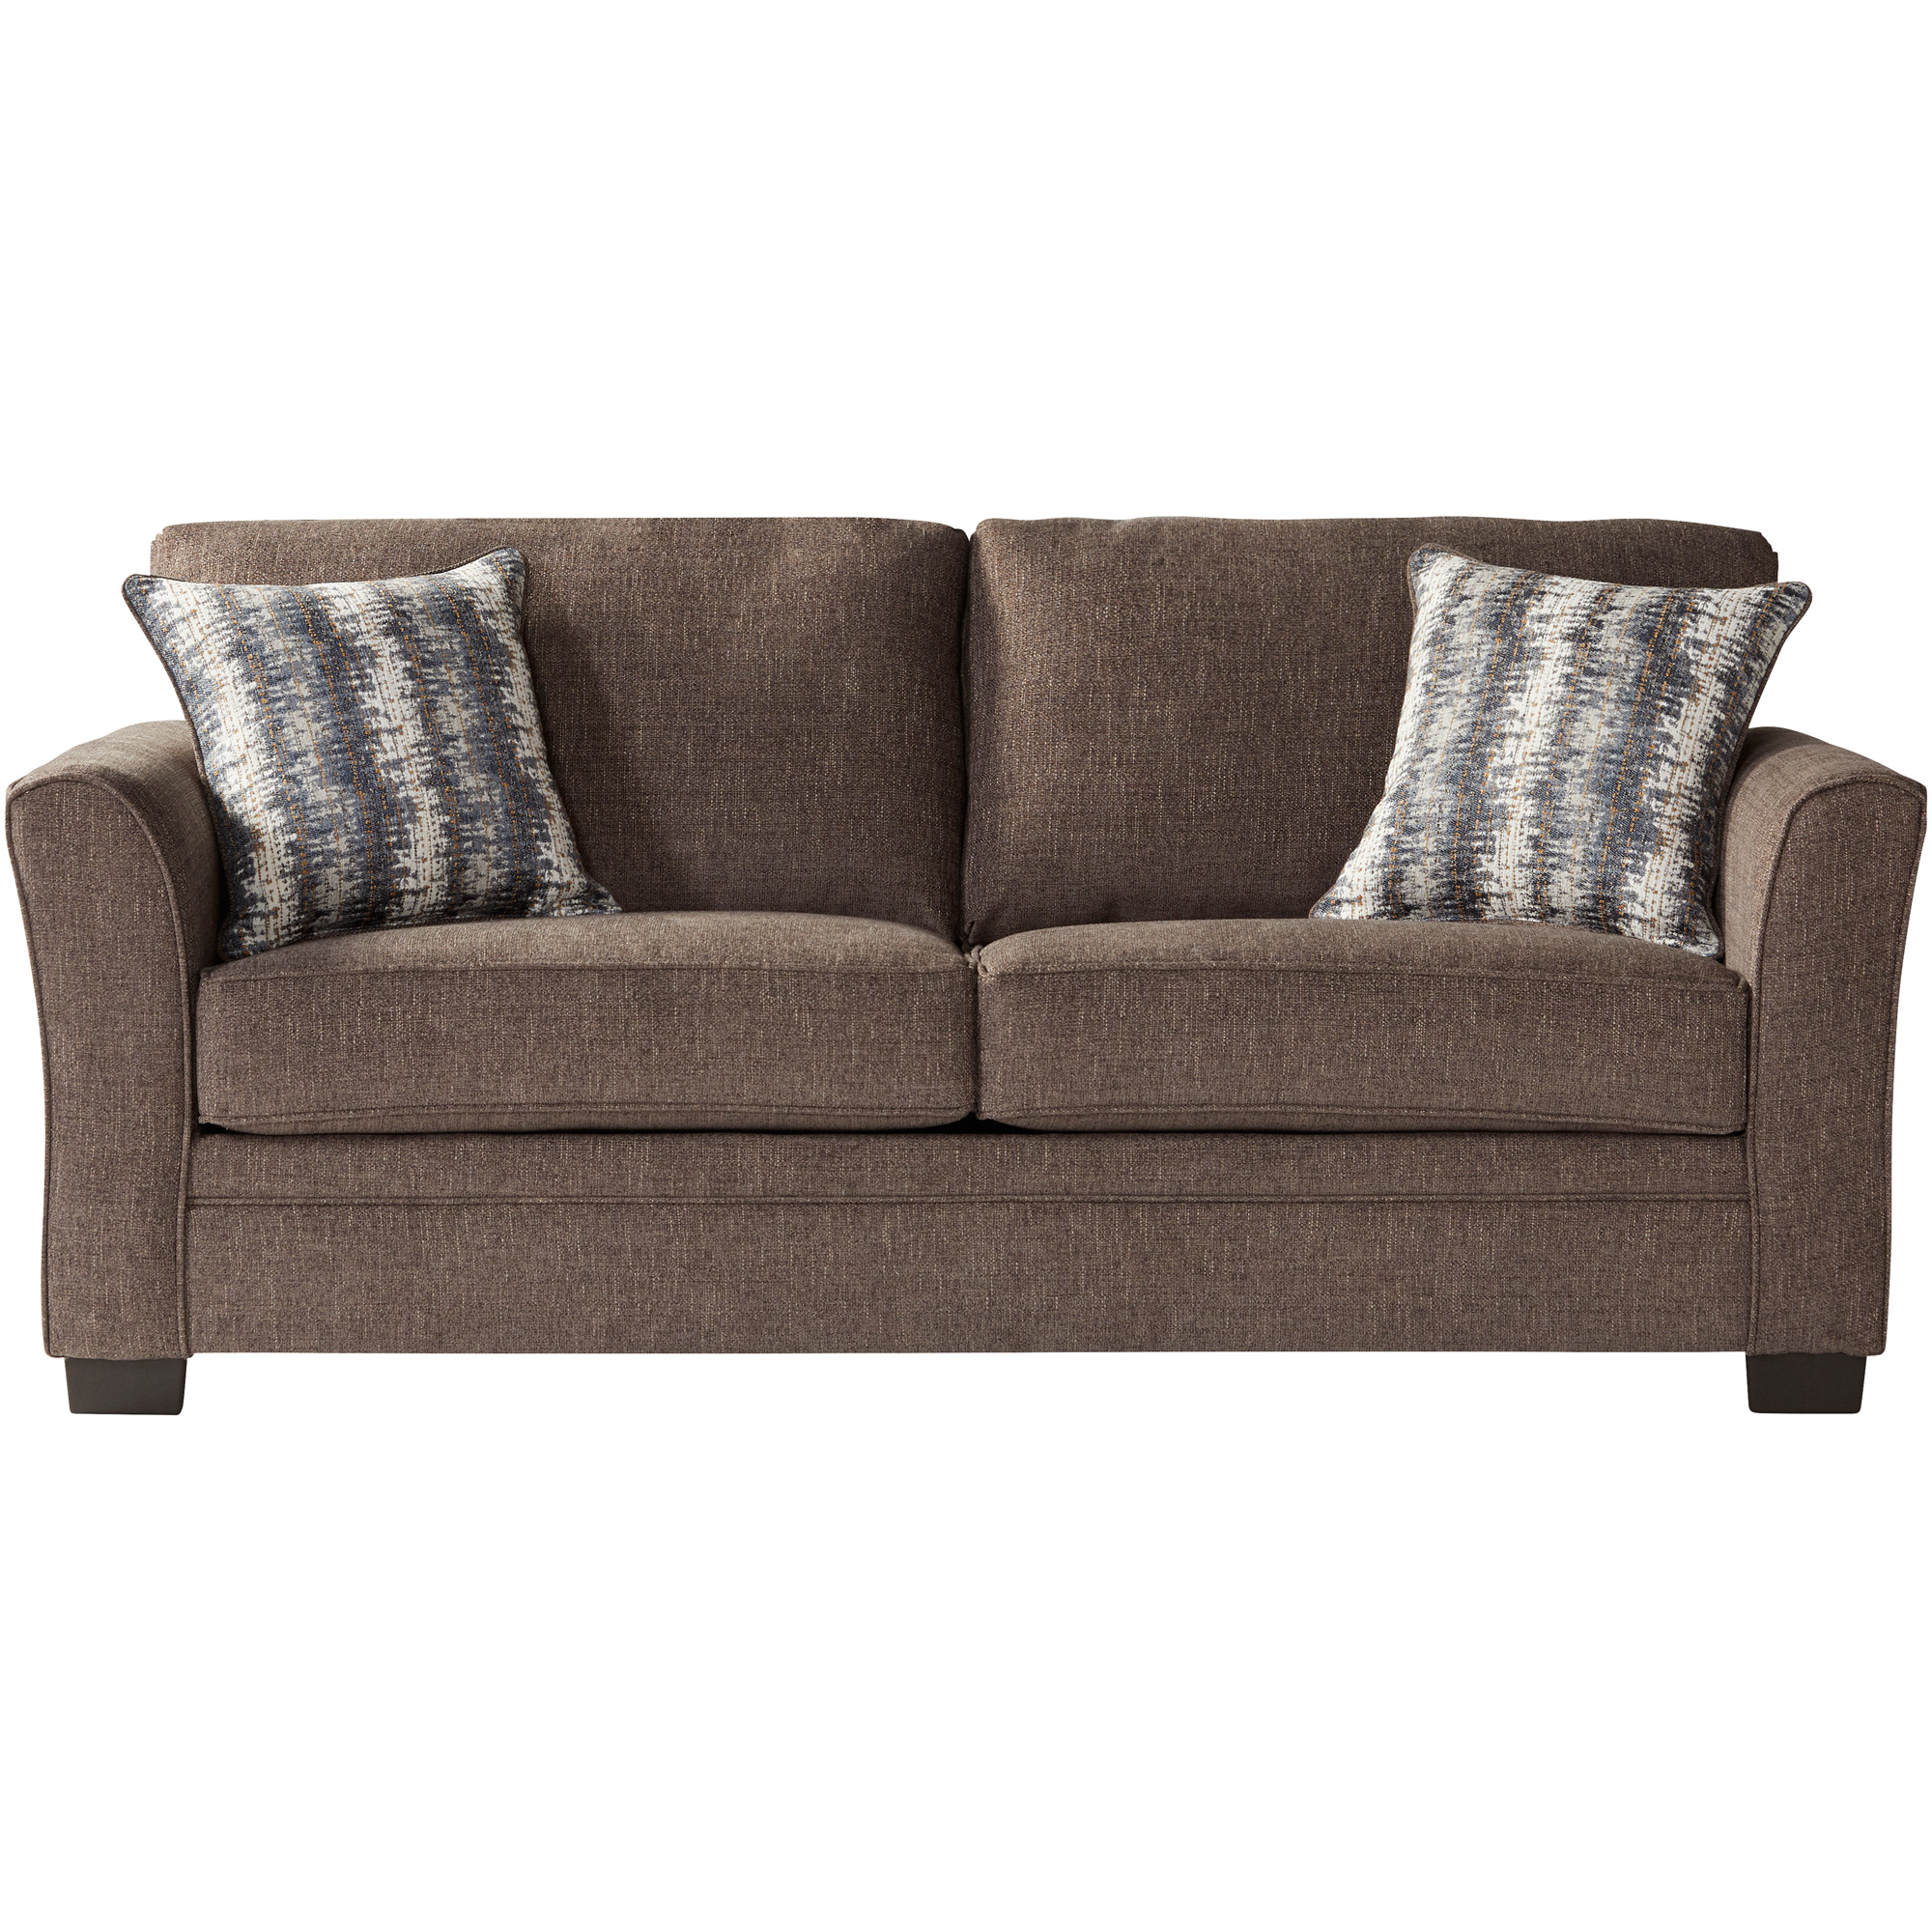 Serta Upholstery By Hughes Furniture | Bolster Umber Full Sleeper Sofa